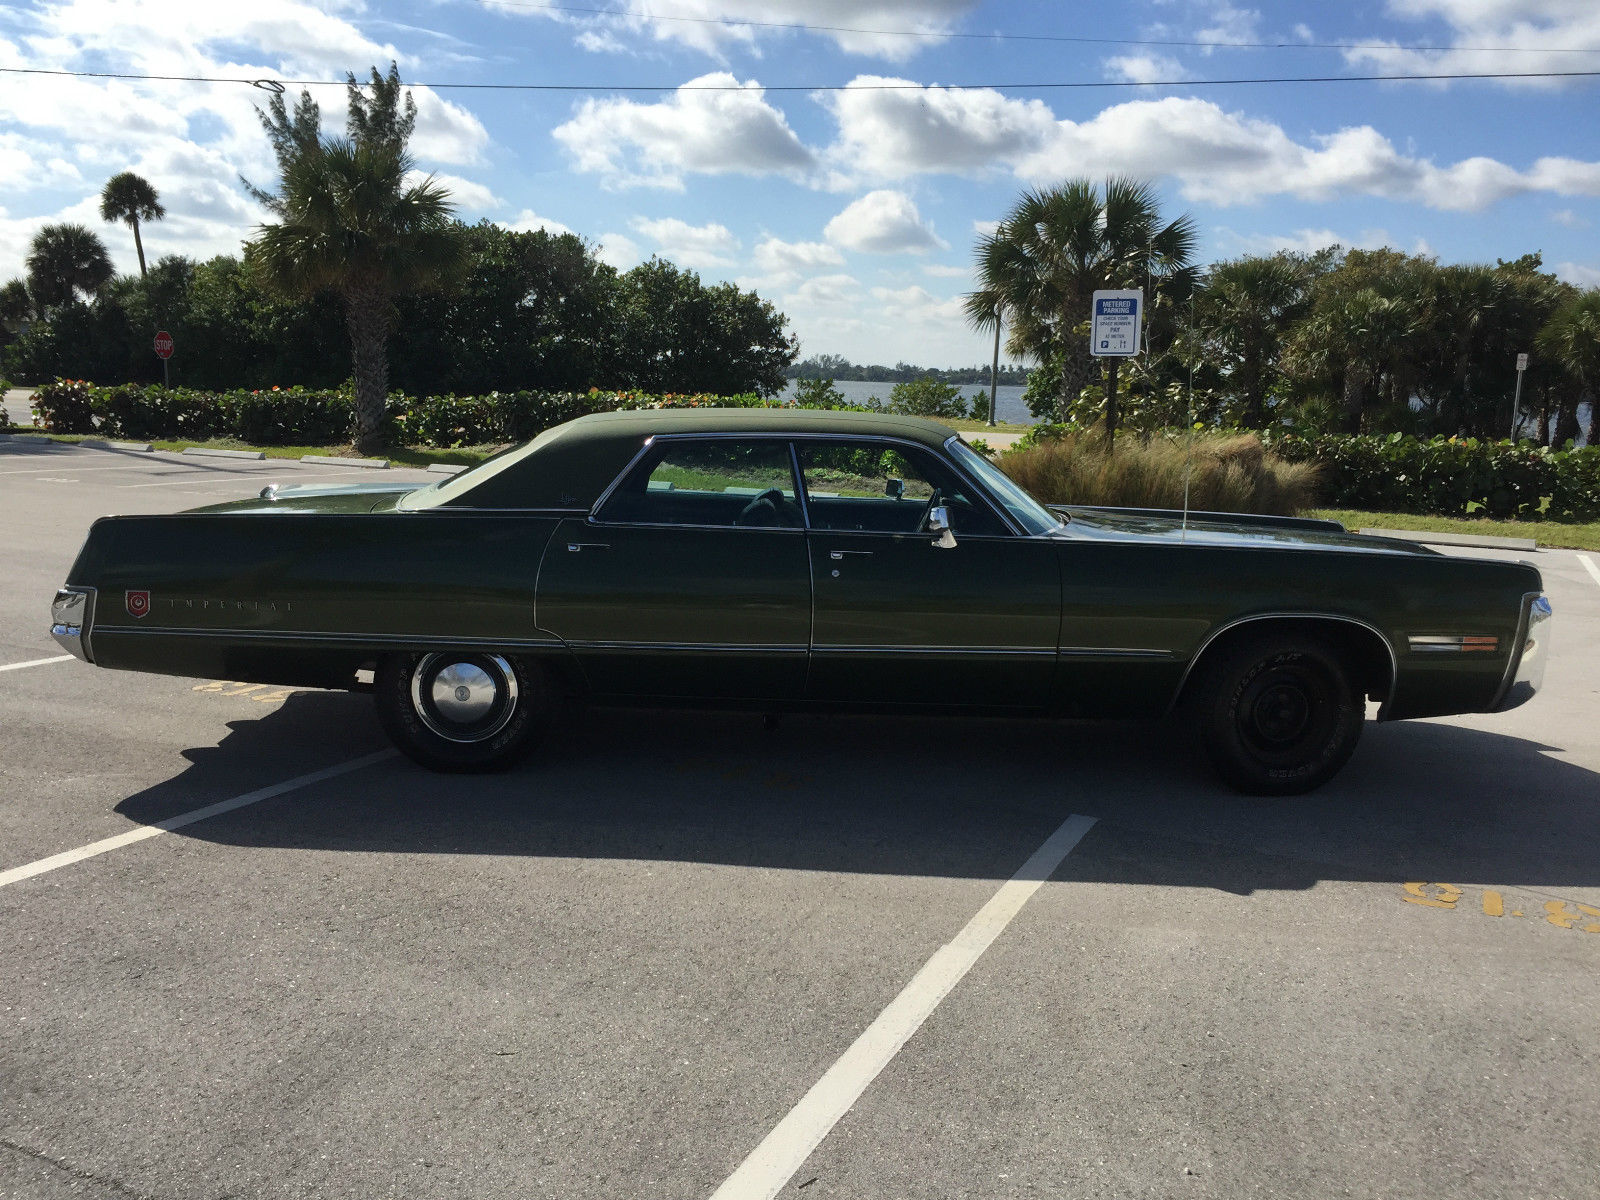 1973 Chrysler Imperial Lebaron Hardtop 4 Door 7 2l